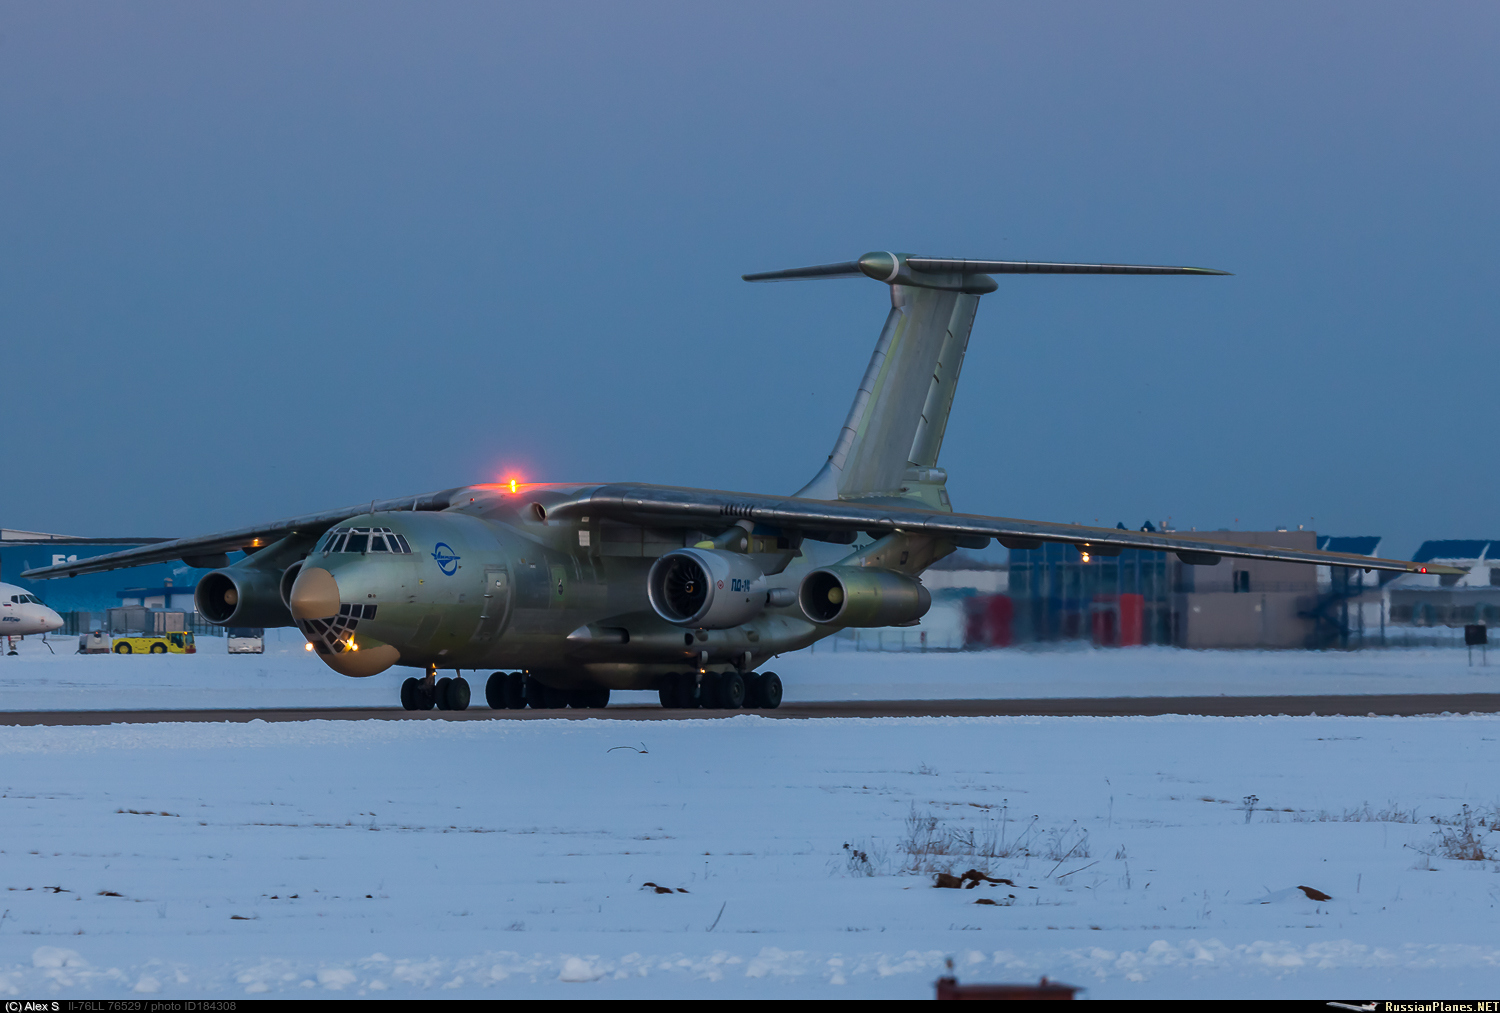 http://russianplanes.net/images/to185000/184308.jpg